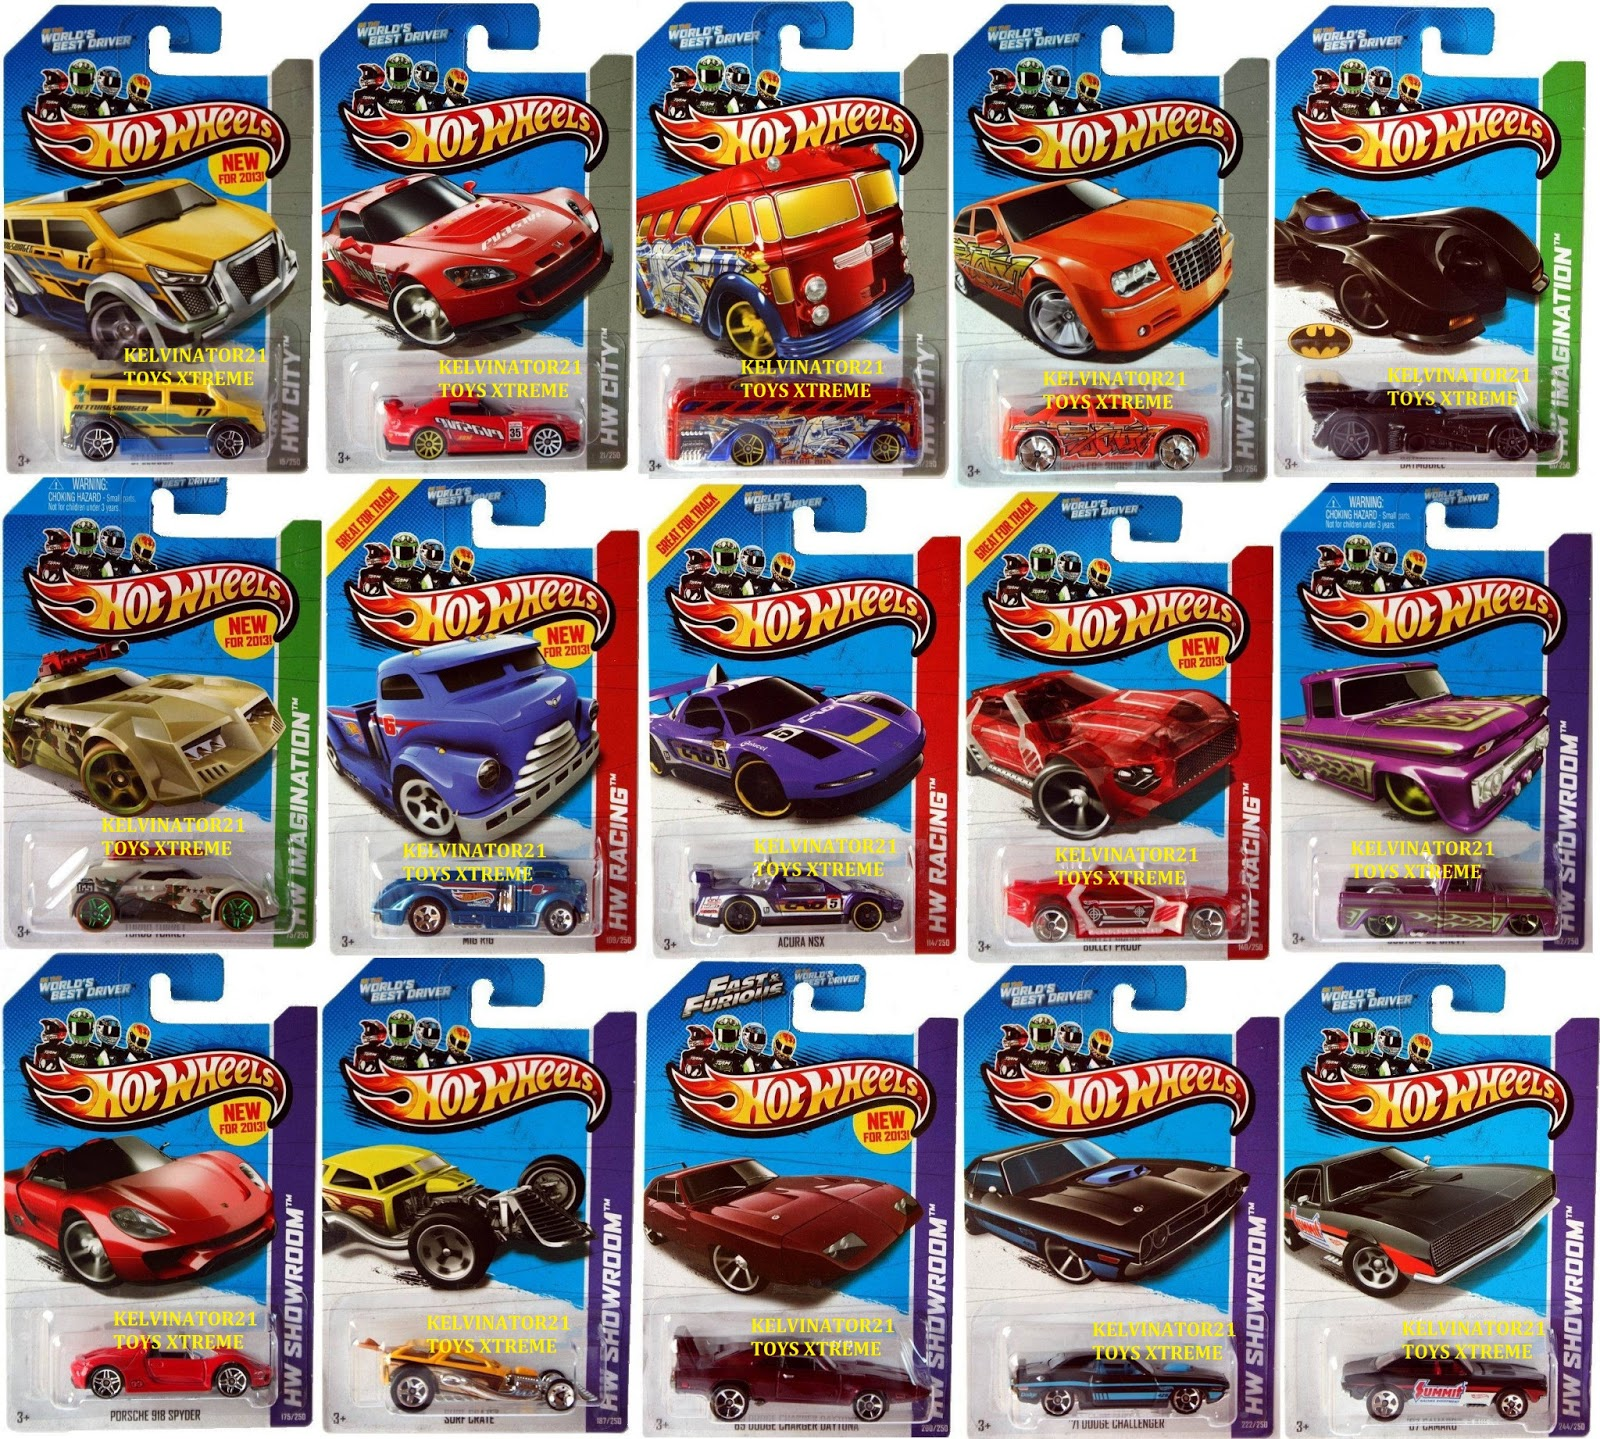 Hot Wheels Classic Cars Ebay